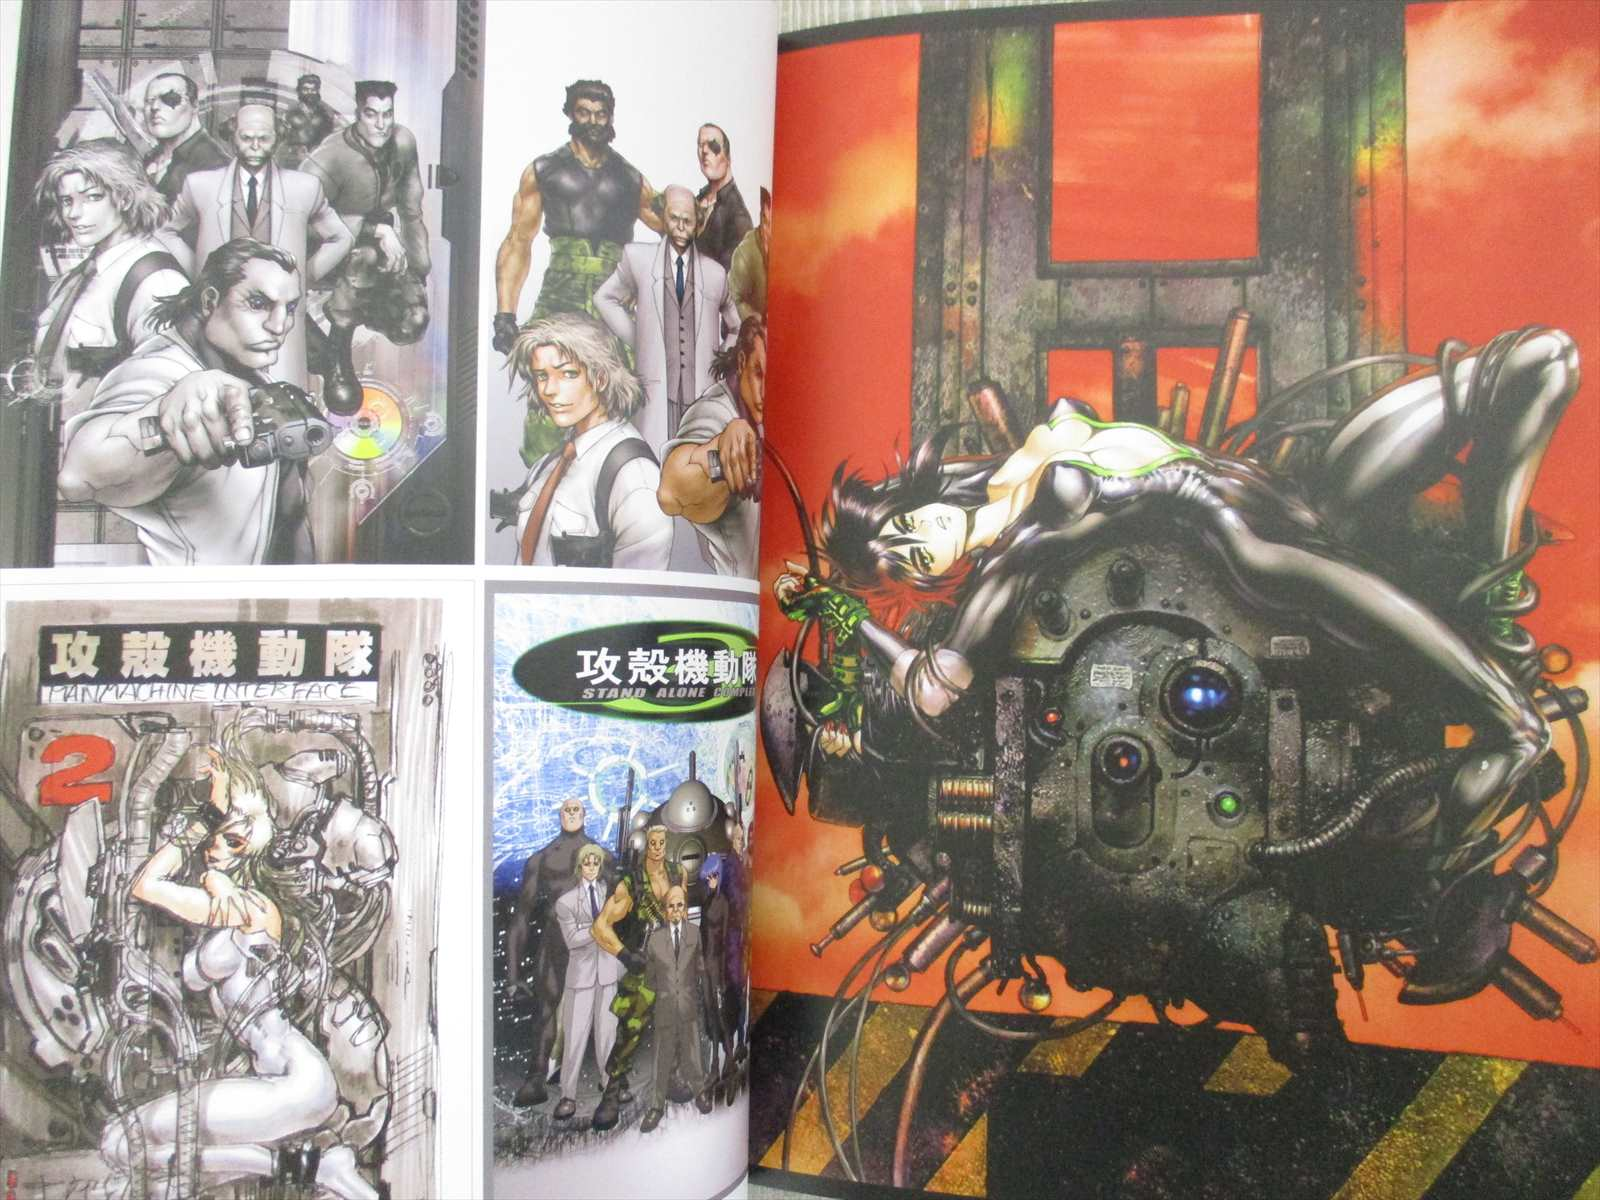 GHOST IN THE SHELL 2015 Exhibition Ltd Art Design Book SHIROW MASAMUNE